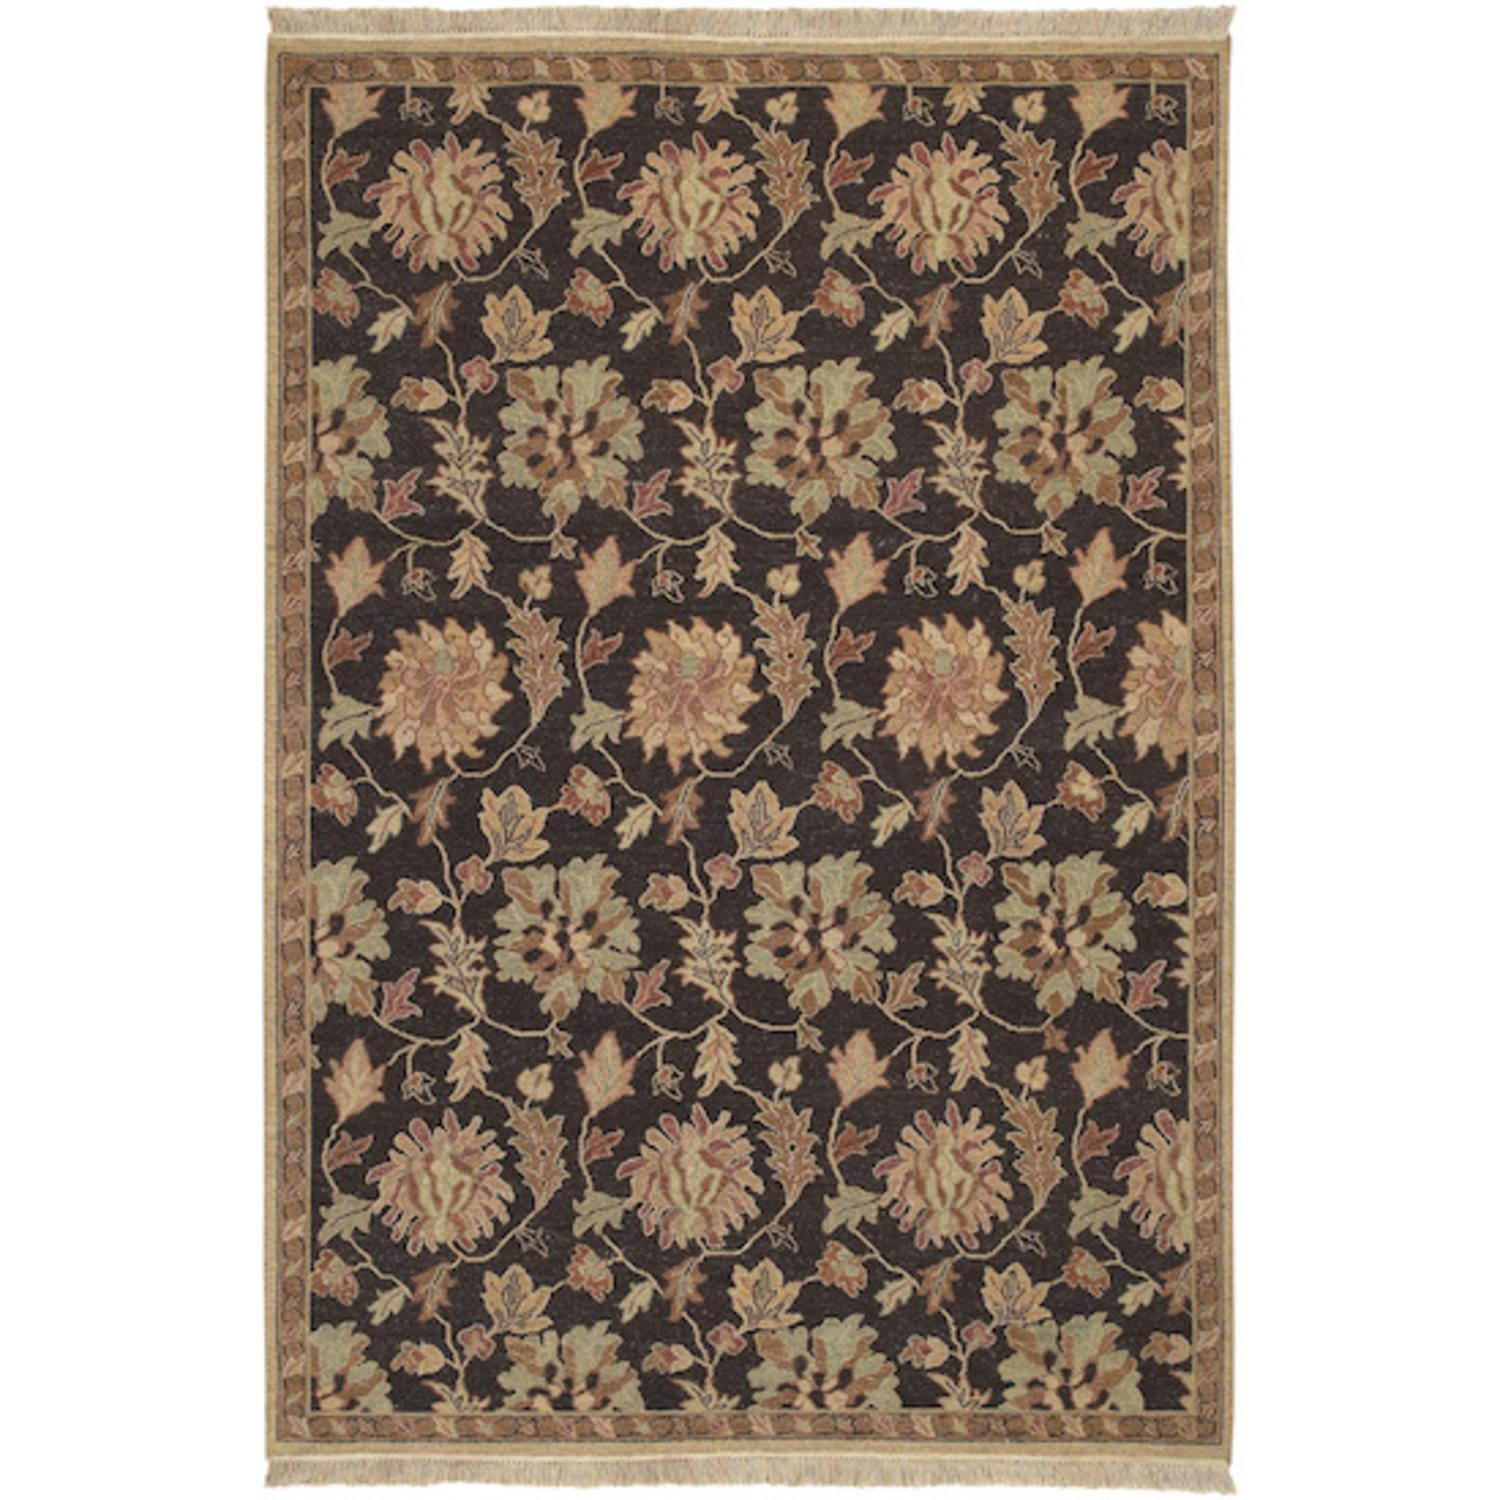 9' x 12' Spanish Ivy Eggplant and Rose Wool Area Throw Rug